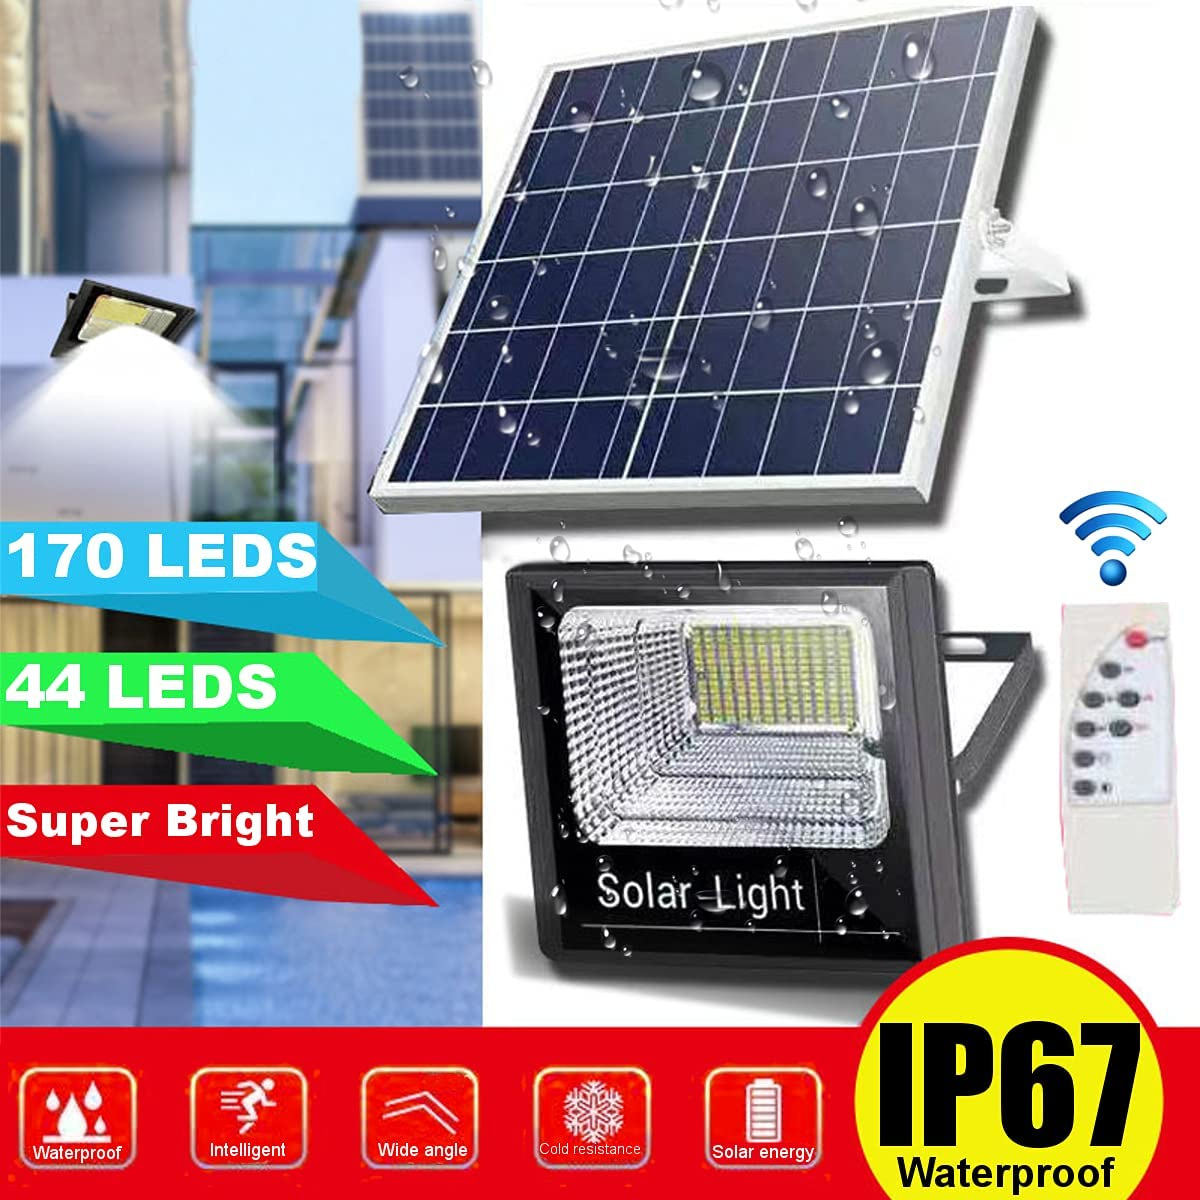 super bright 24 leds solar panel street light led on the wall waterproof outdoor lighting solar panel lamp with 4000ma battery 44/170 Led Light with Solar Panel Garden Lighting on Solar Energy Solar Outdoor Lights Waterproof IP67 Garden Lamp Always Light